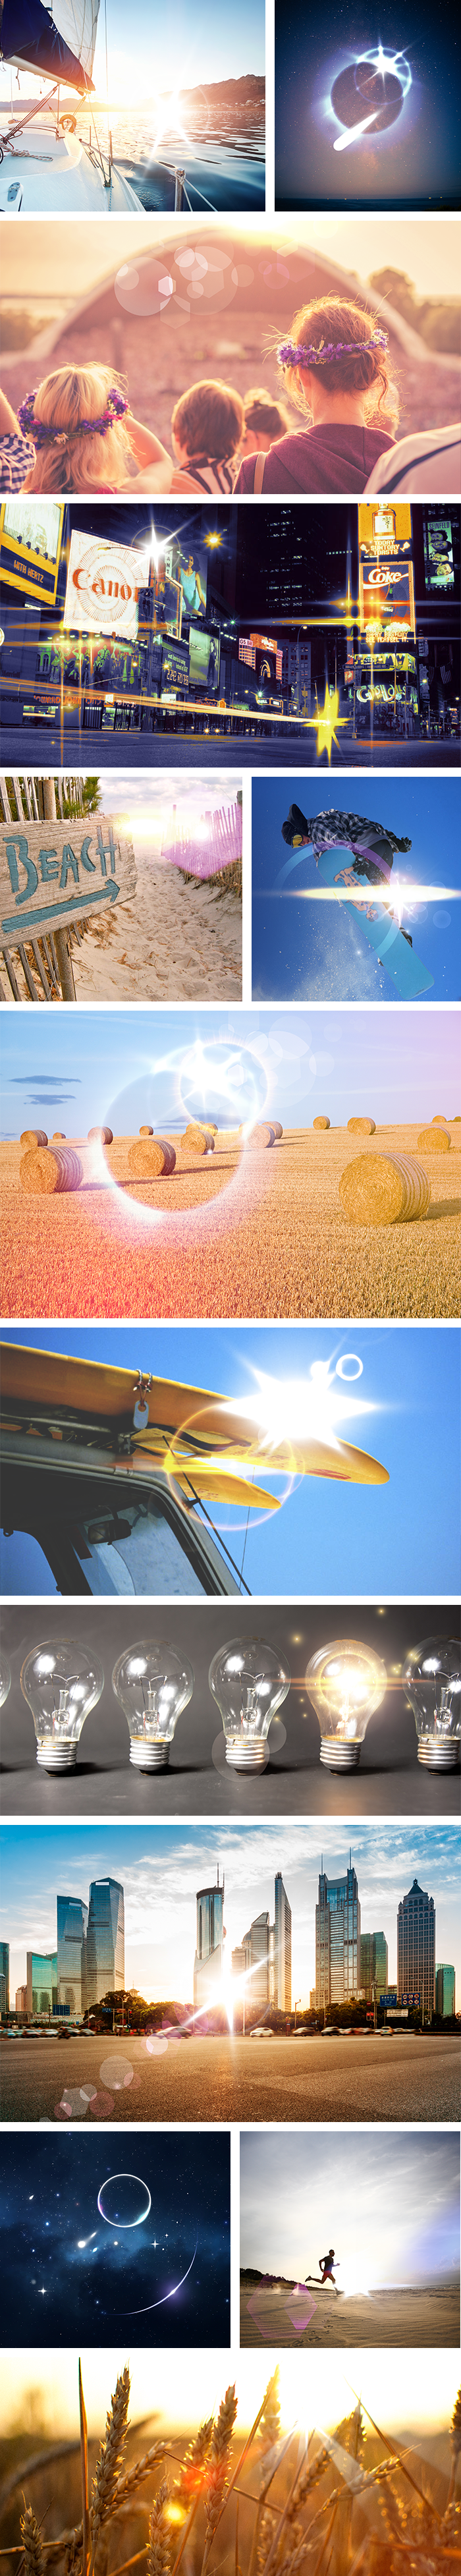 100 Lens Flare Effects with 90% OFF - preview big 700px